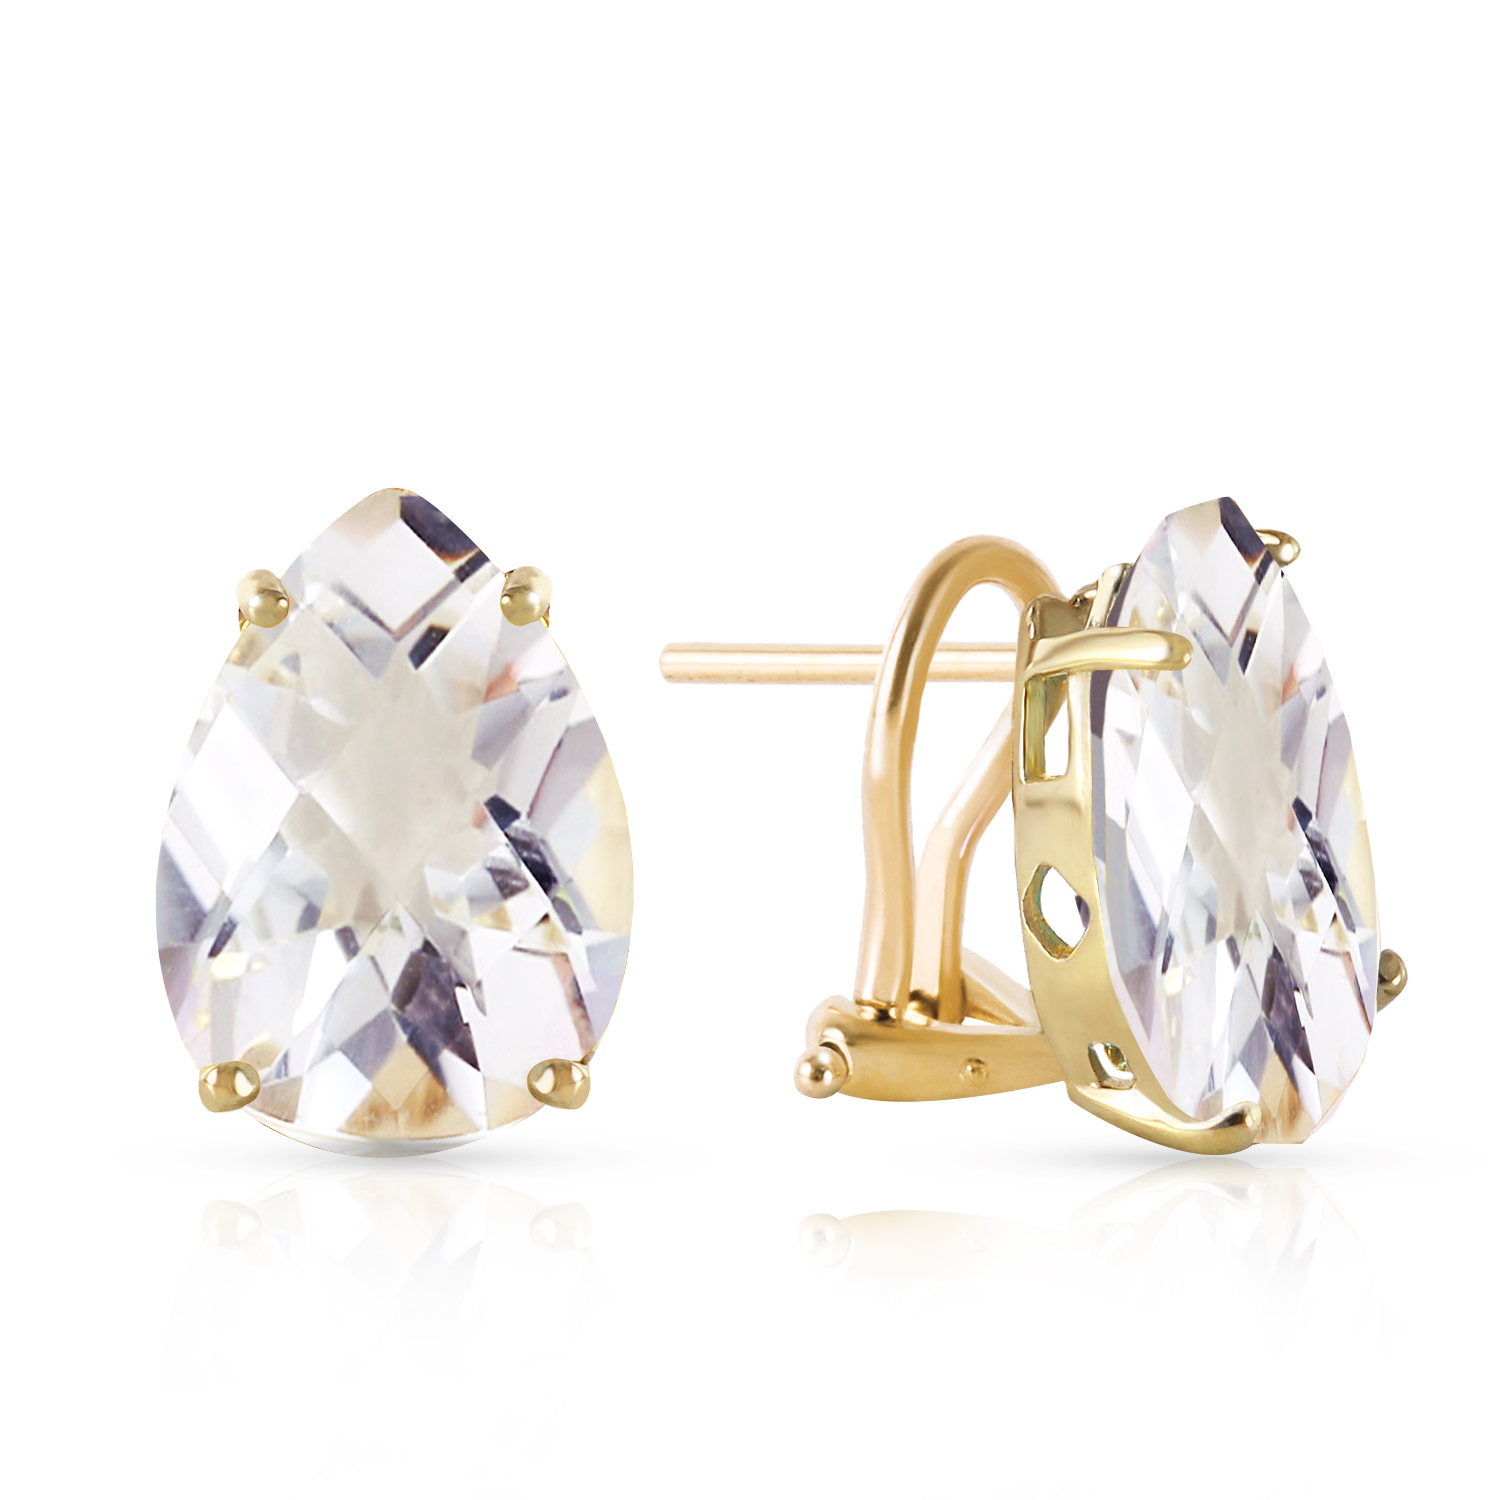 Image Is Loading 10 Ctw 14k Solid Gold French Clips Earrings